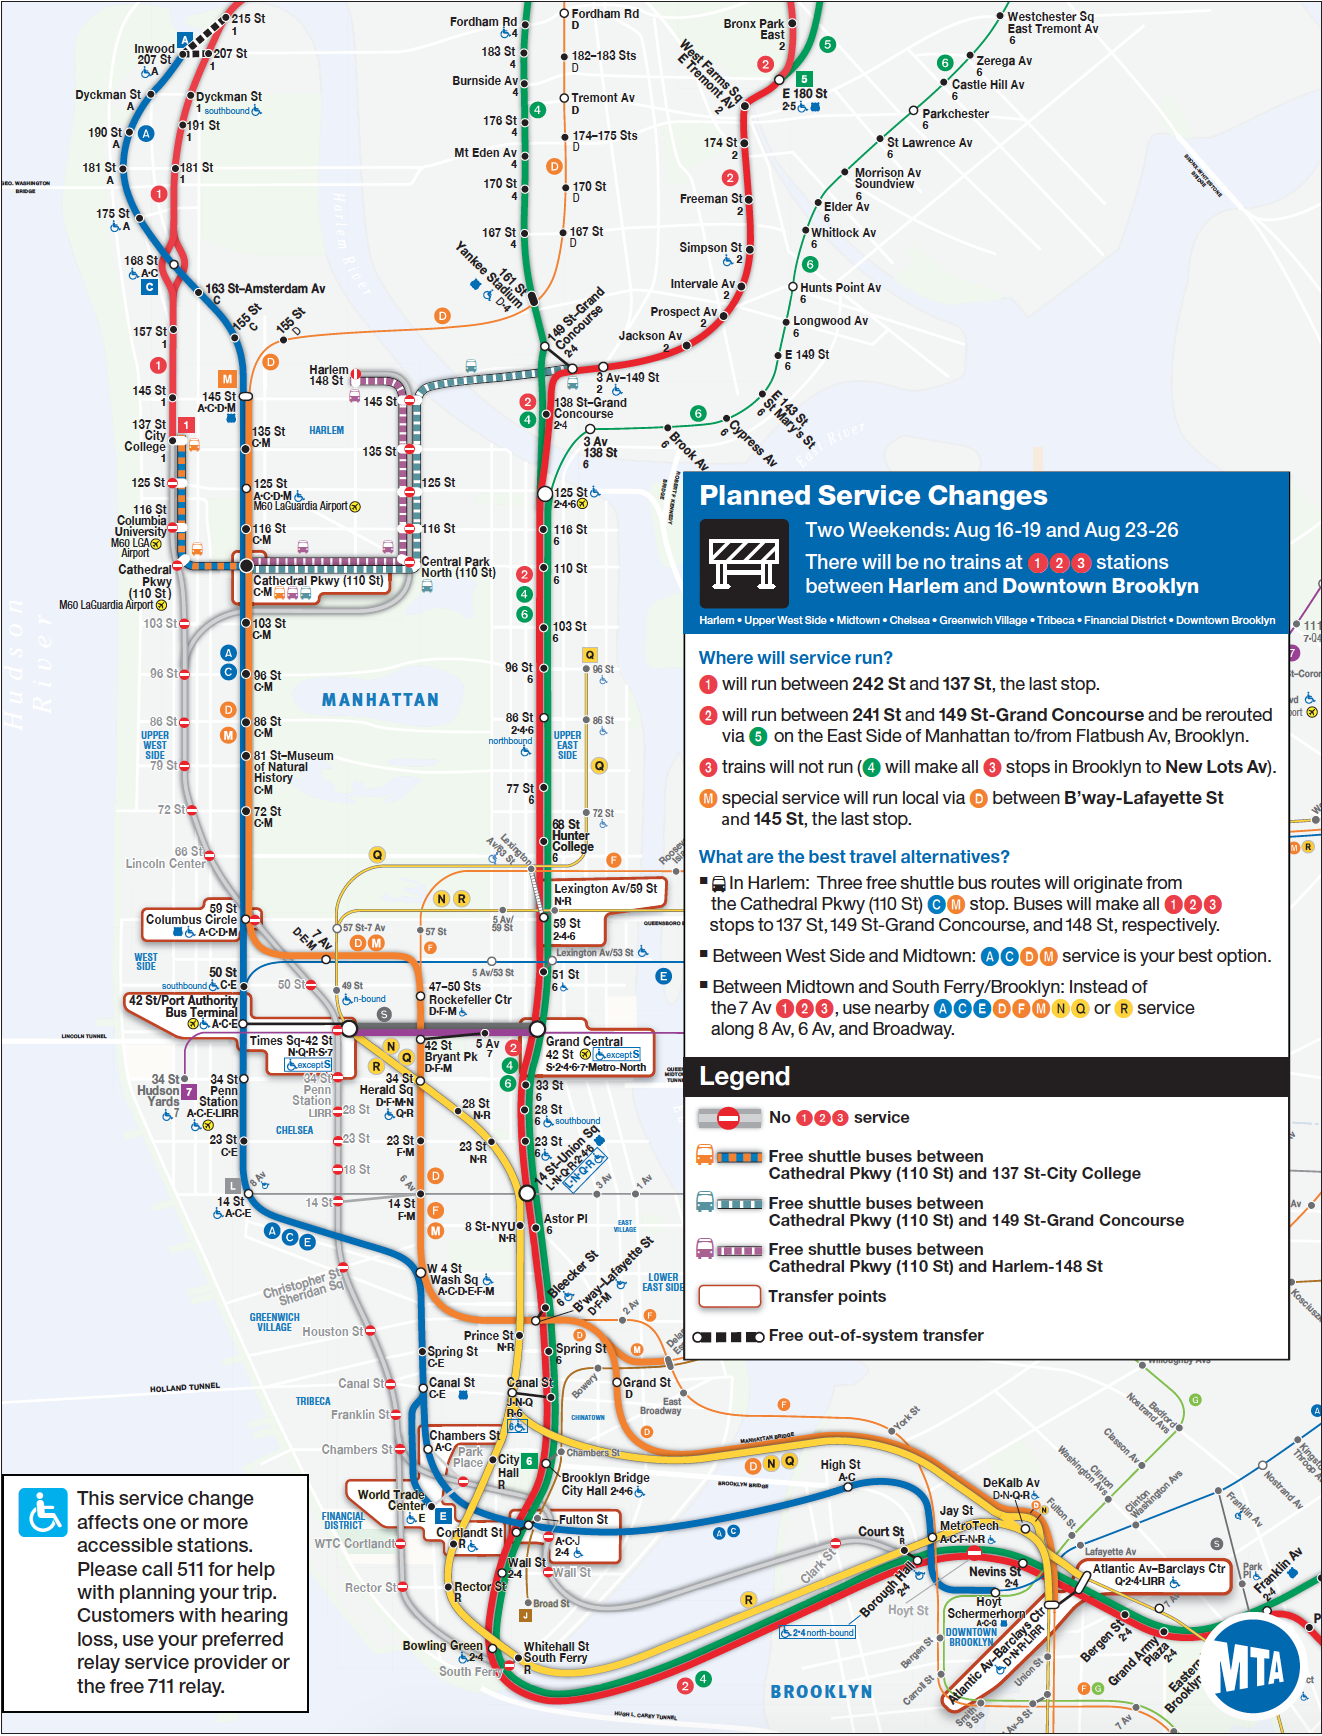 MTA Planned Service Changes for the Weekends: Aug 16-19 and ... on s74 bus map, s44 bus map, s53 bus map, s55 bus map, m57 bus map, m60 bus map, m20 bus map, s79 bus map, s57 bus map, s62 bus map, s66 bus map, s59 bus map, s89 bus map,